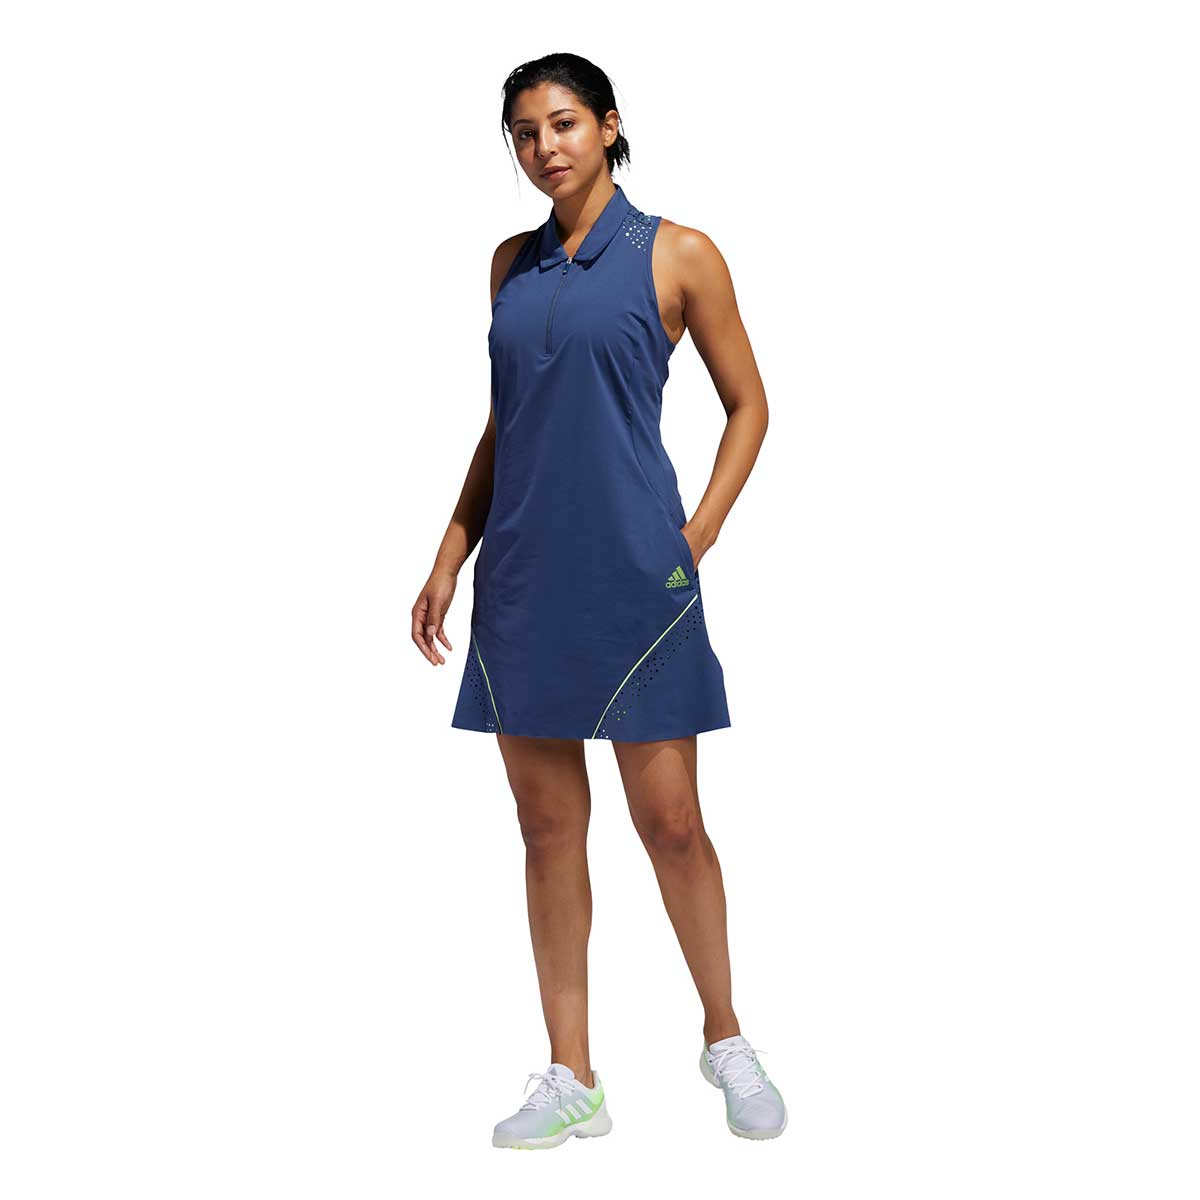 Adidas Women's Perforated Color Pop Tech Indigo Dress